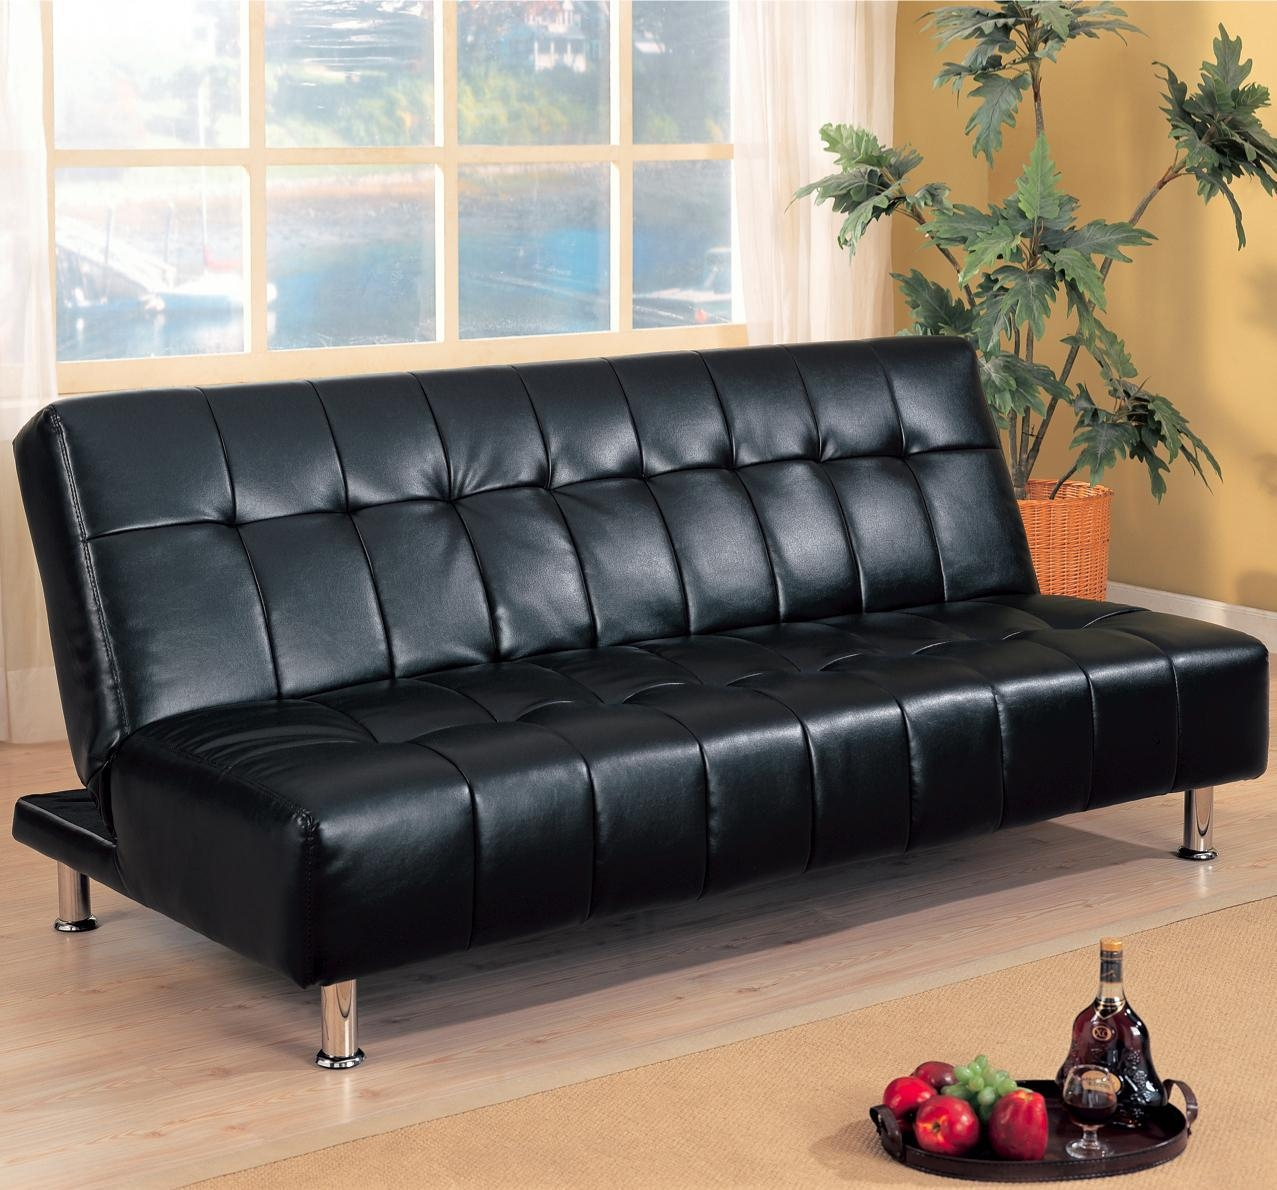 Furniture: Faux Leather Futon Sofa | Faux Leather Futon | Futon Regarding Leather Fouton Sofas (Image 8 of 20)